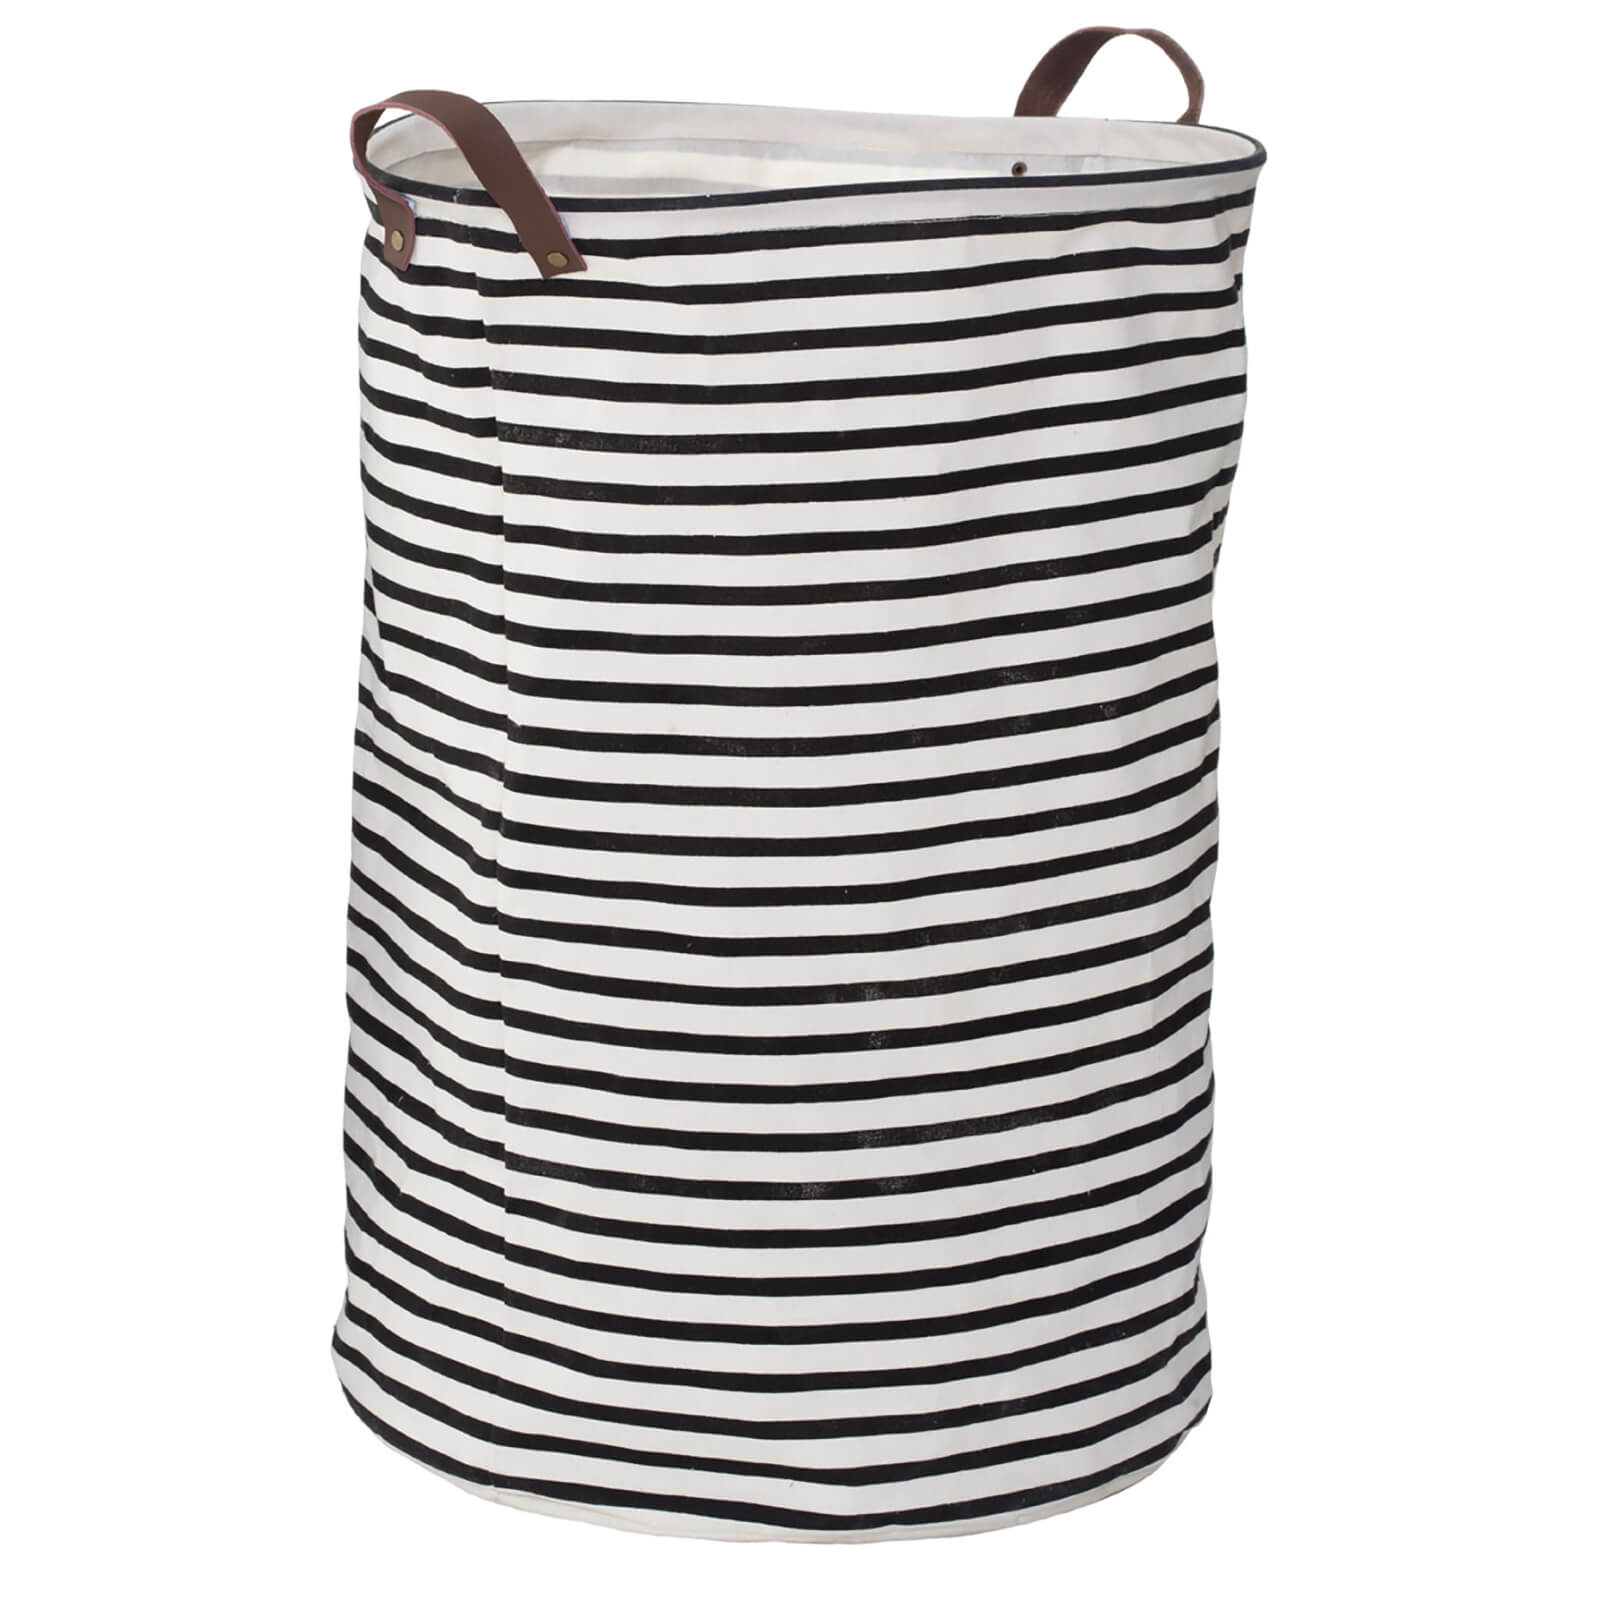 Fifty Five South Stripe Laundry Bag - Black/Natural